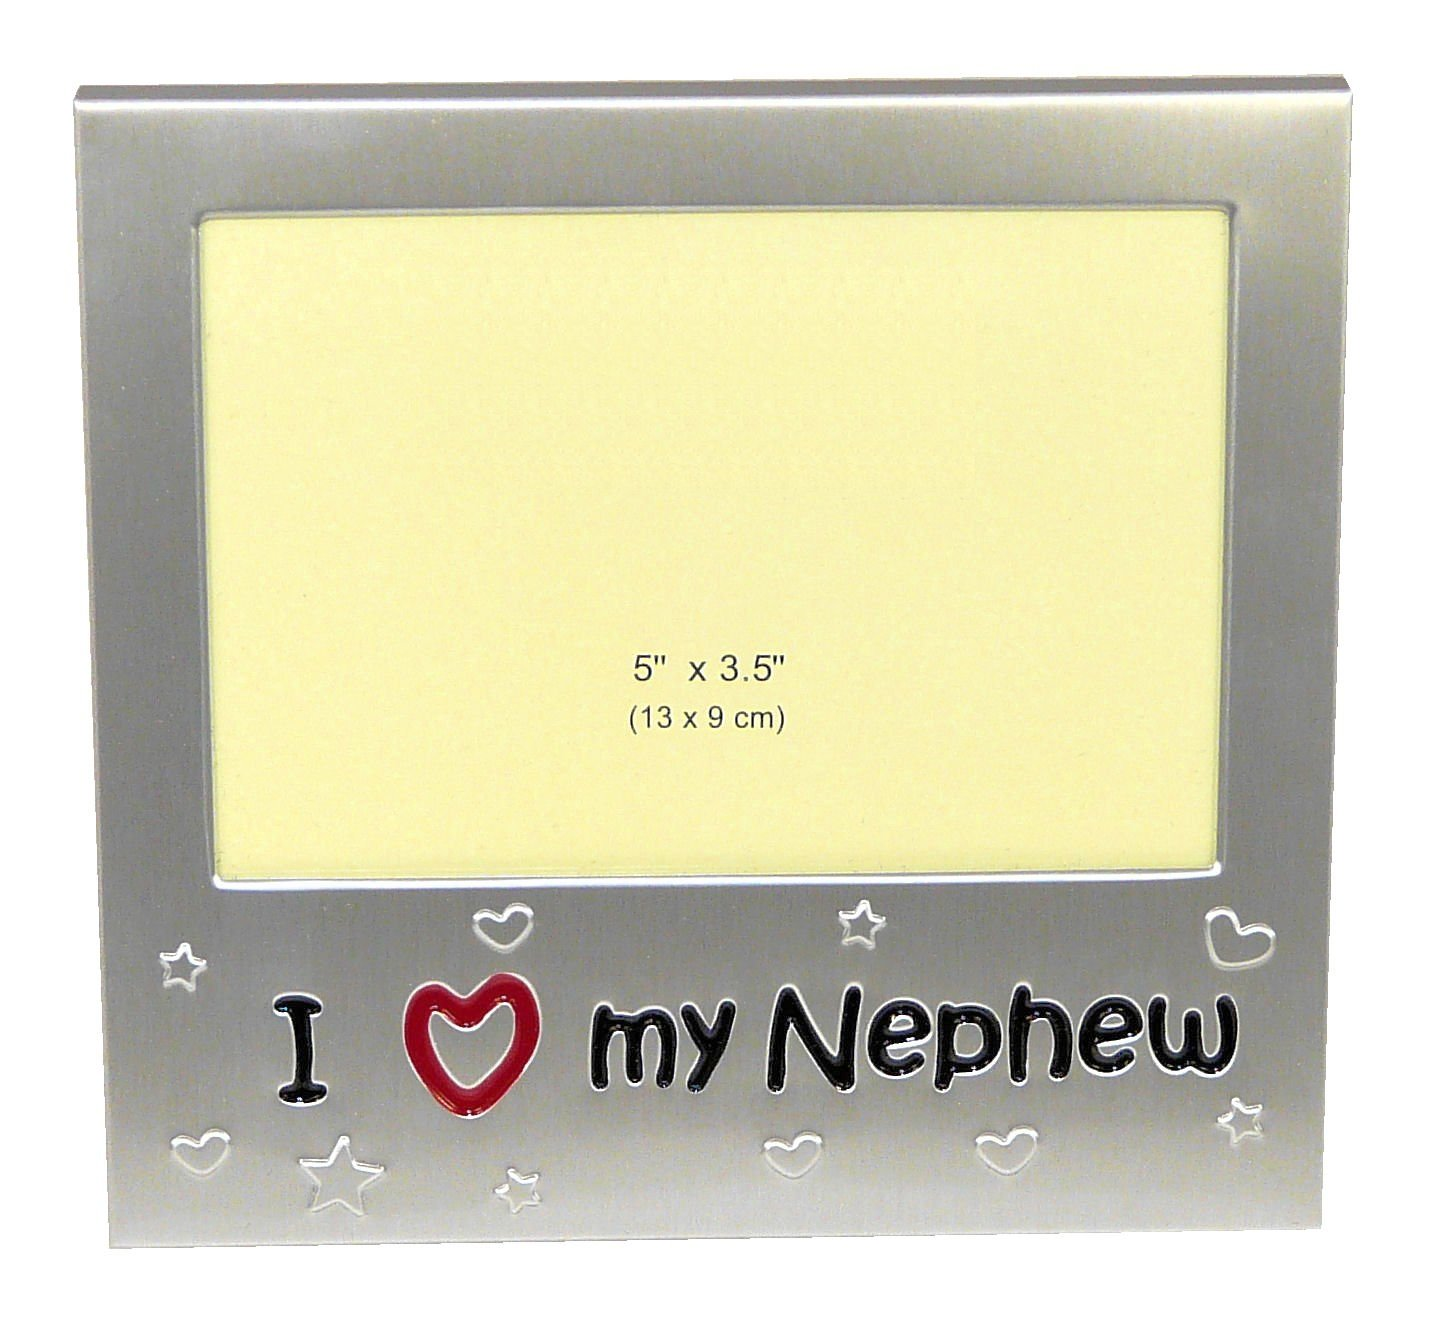 I Love My Nephew Photo Picture Frame Gift - 5 x 3.5